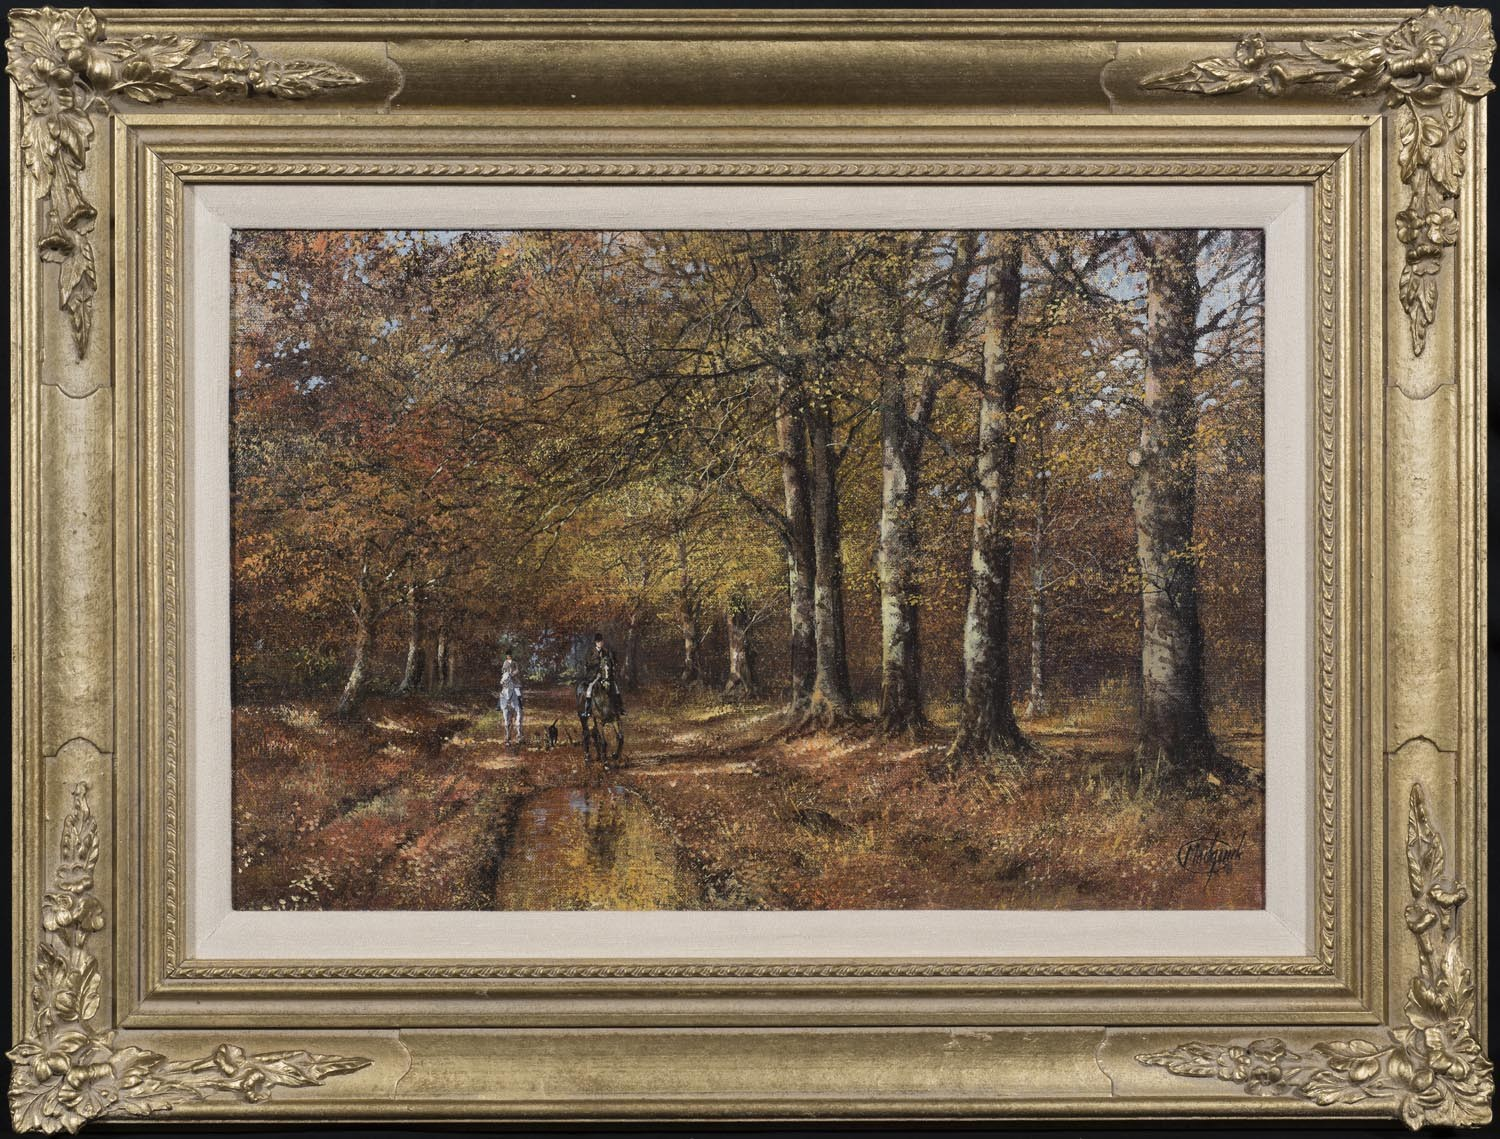 Horse Riders in the Autumn - SOLD